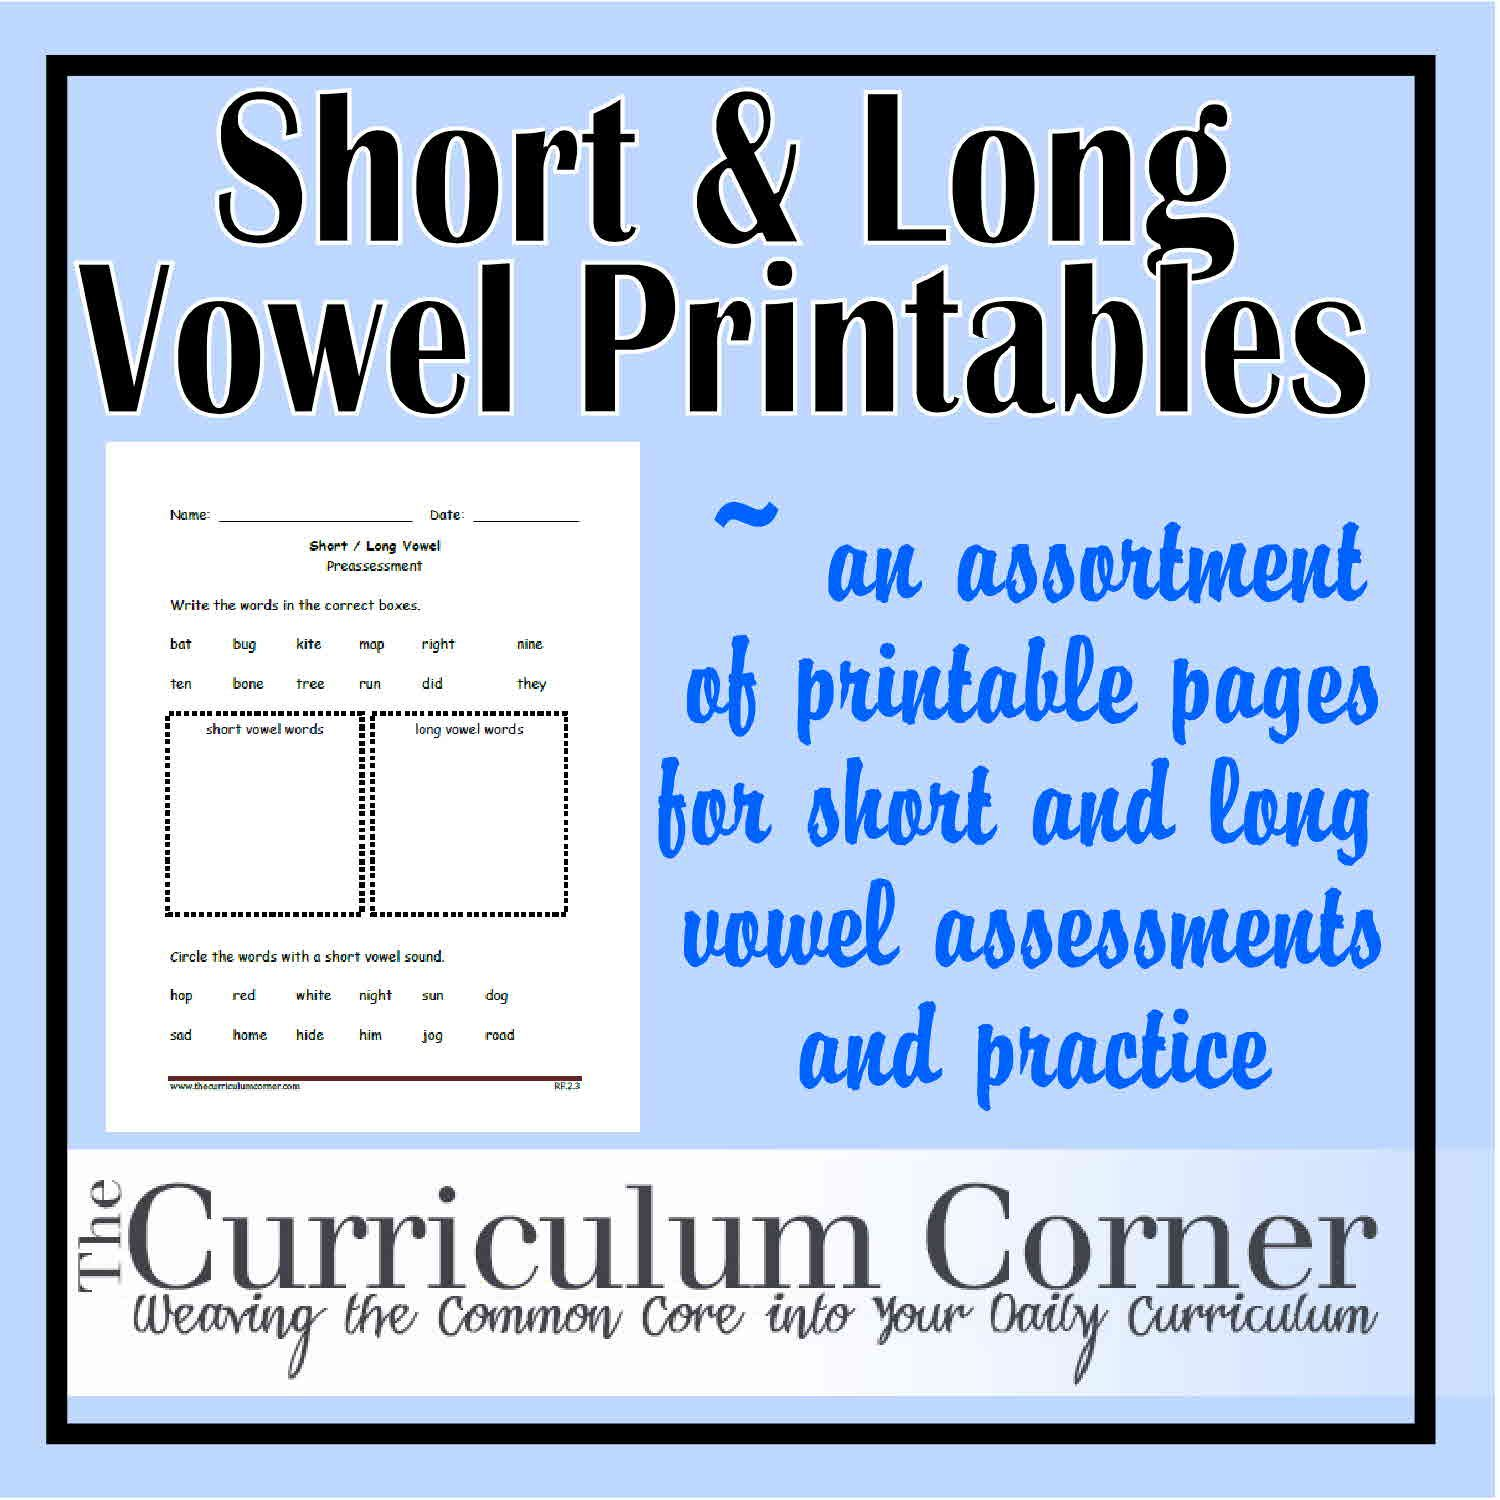 worksheet Short Vowel Sound Worksheets short and long vowel sound printables sounds vowels if your students need practice with here are